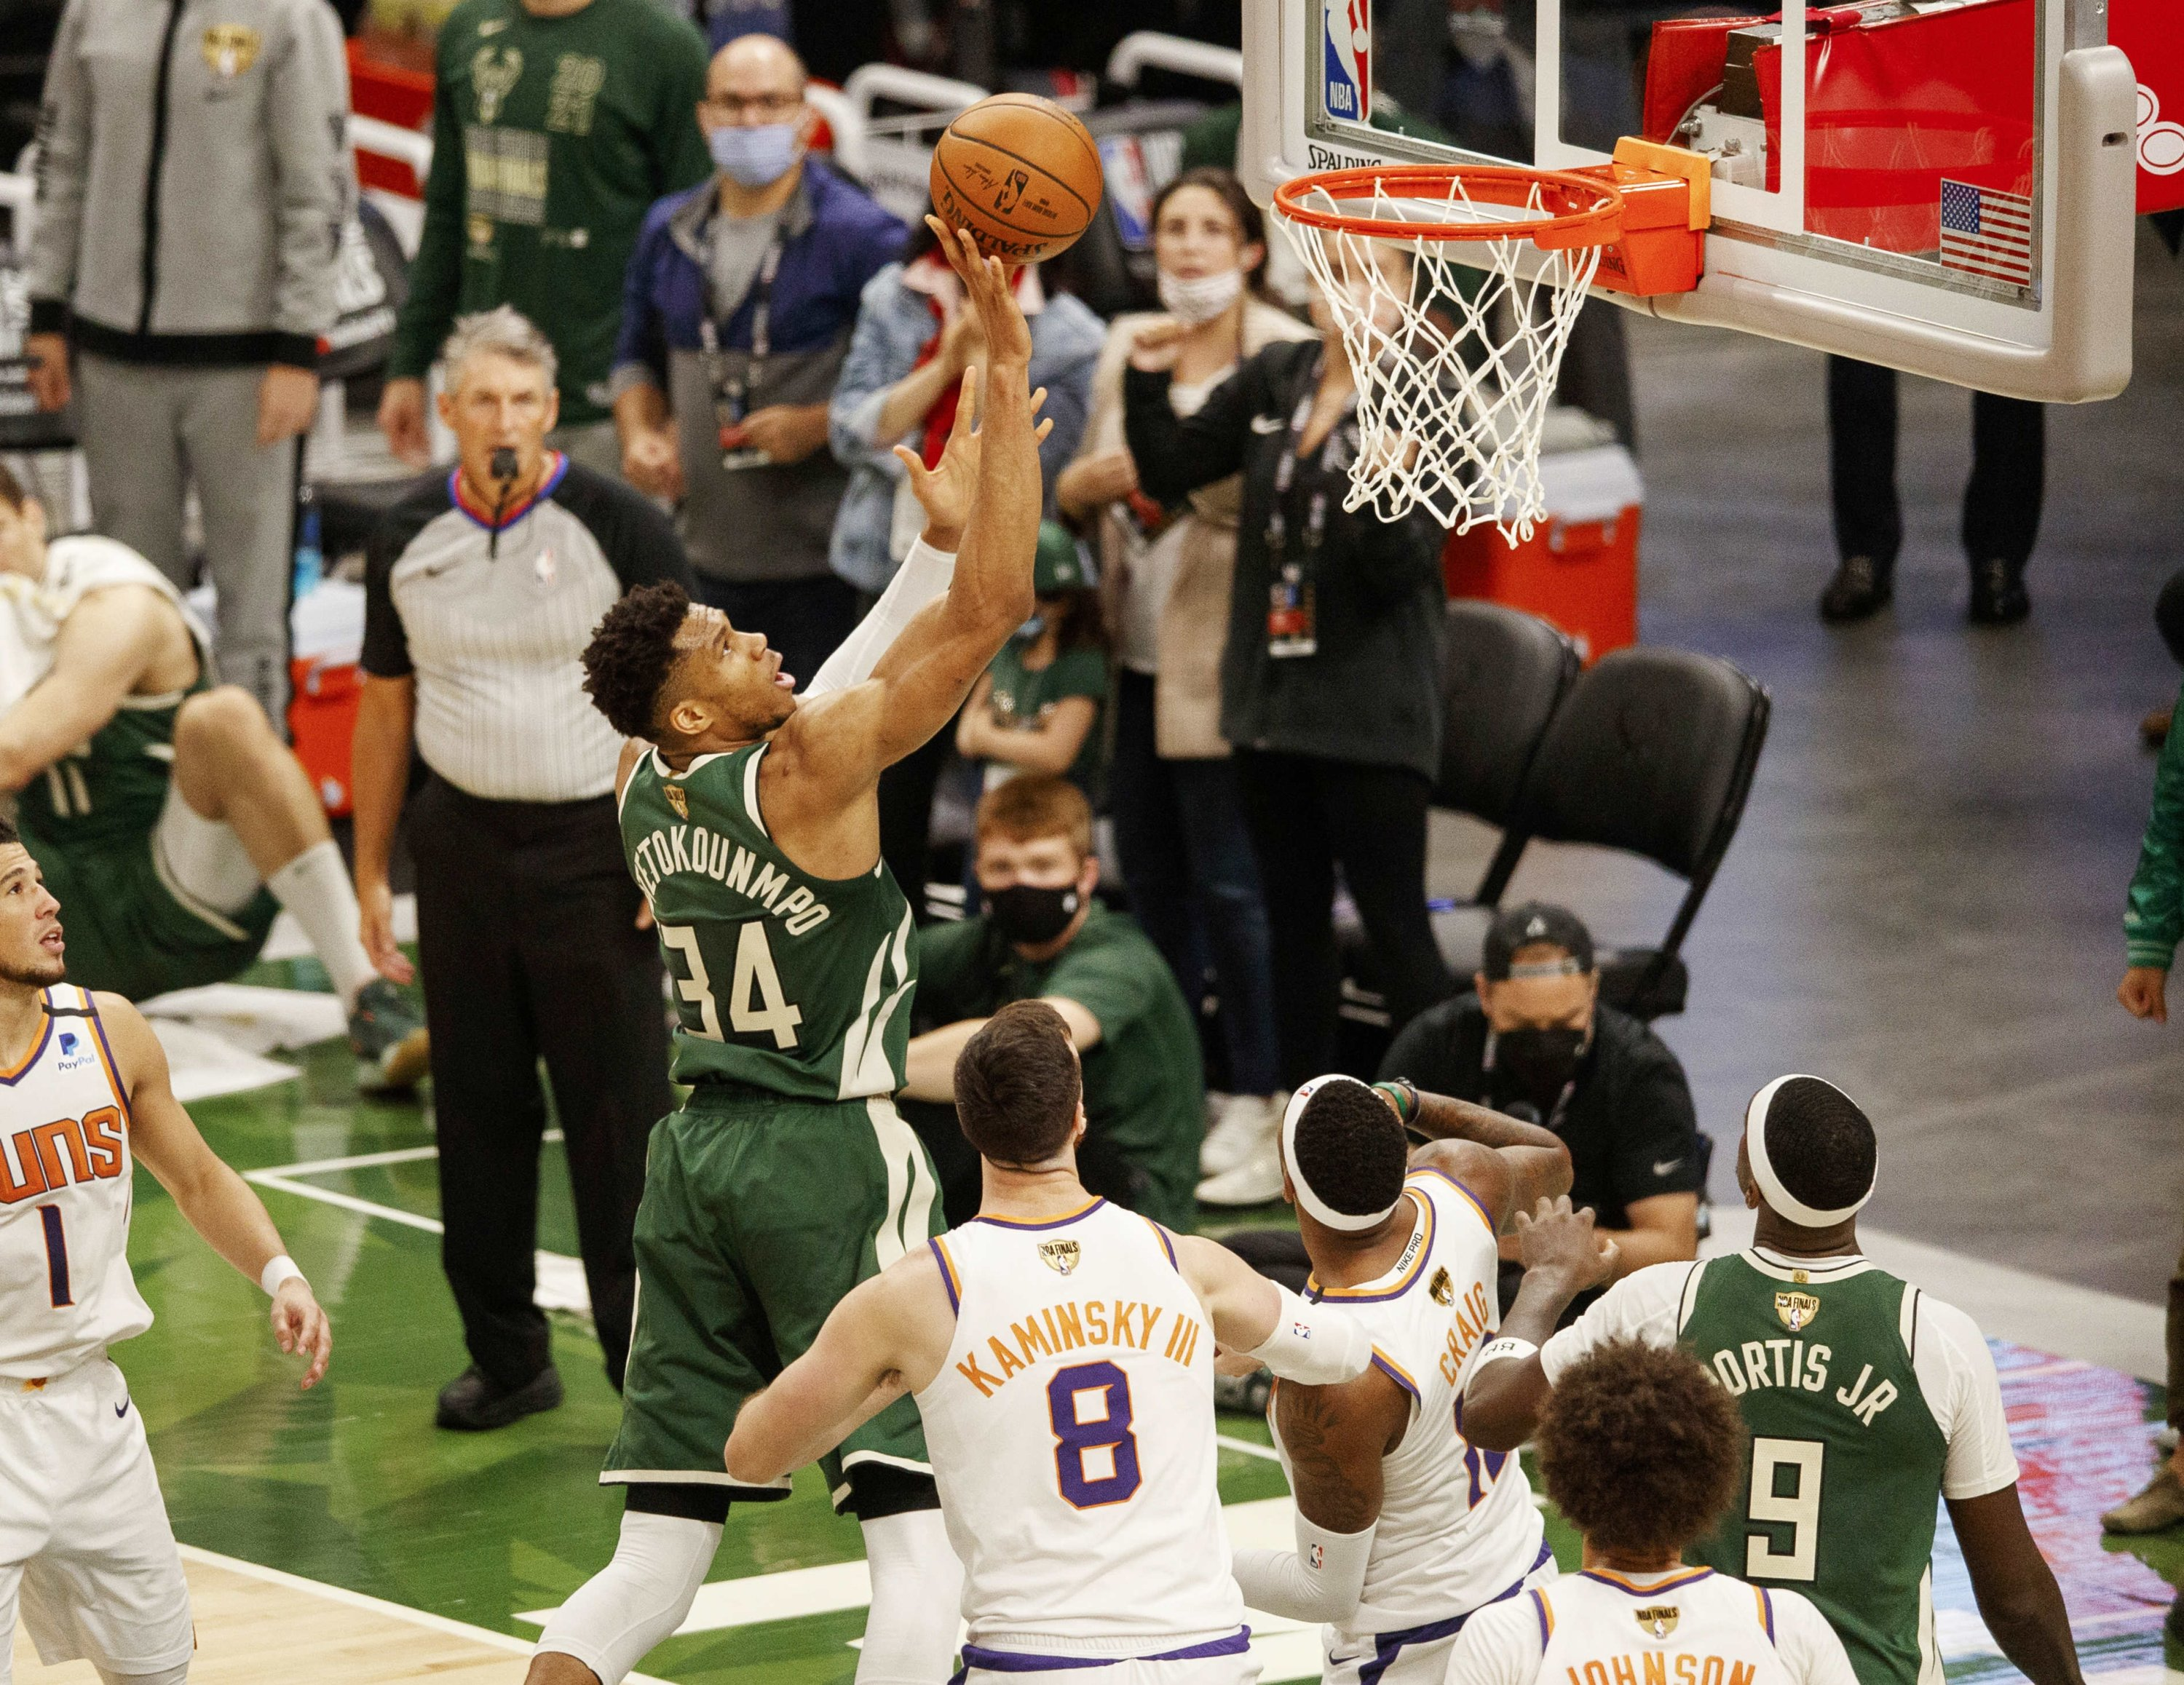 Milwaukee Bucks forward Giannis Antetokounmpo (2nd L) shoots against the Phoenix Suns during the NBA Finals Game 3 at Fiserv Forum, Milwaukee, Wisconsin, U.S., July 11, 2021. (Reuters Photo)